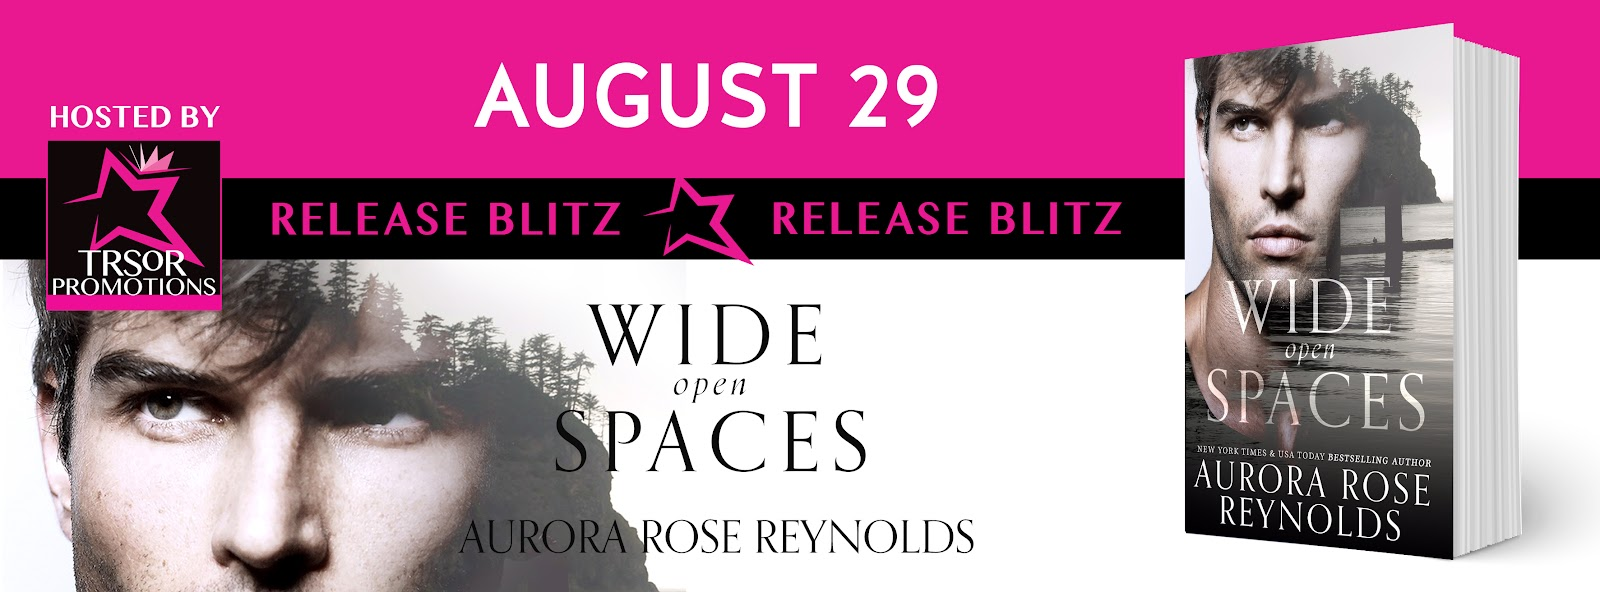 WIDE_OPEN_SPACES_RELEASE_BLITZ.jpg